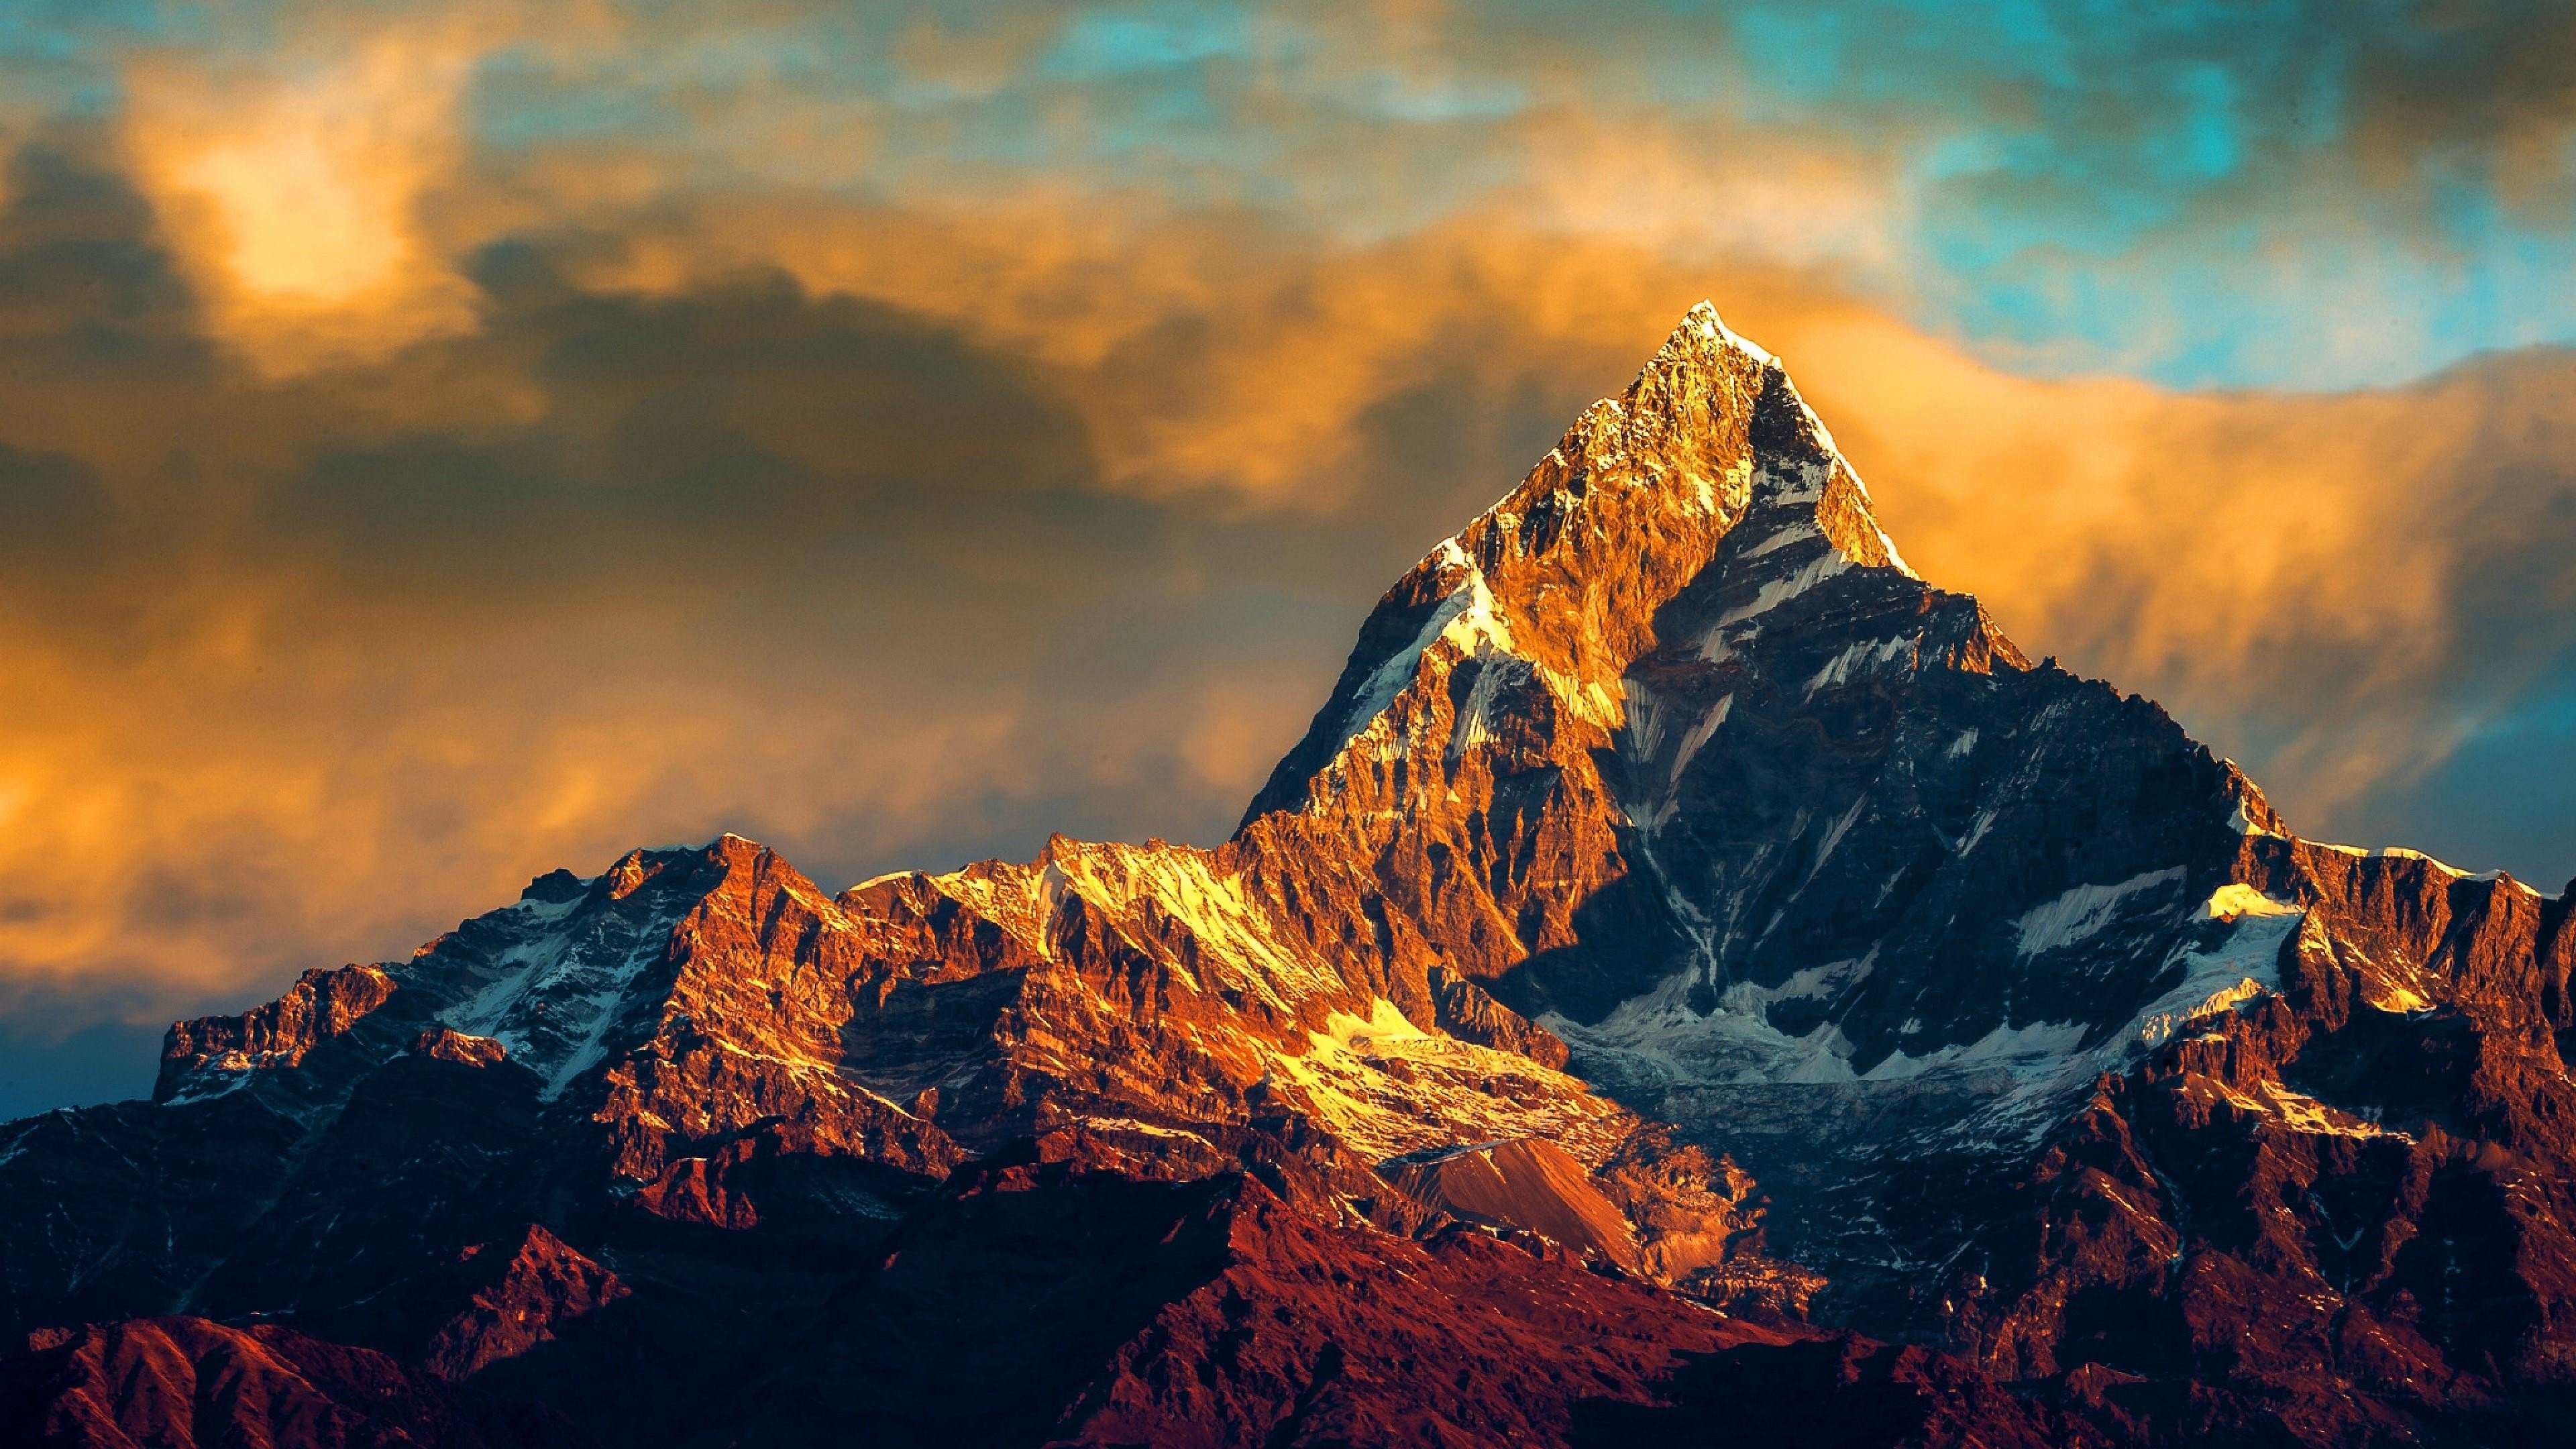 Awesome 4K wallpapers for your desktop or mobile screen free and easy to download